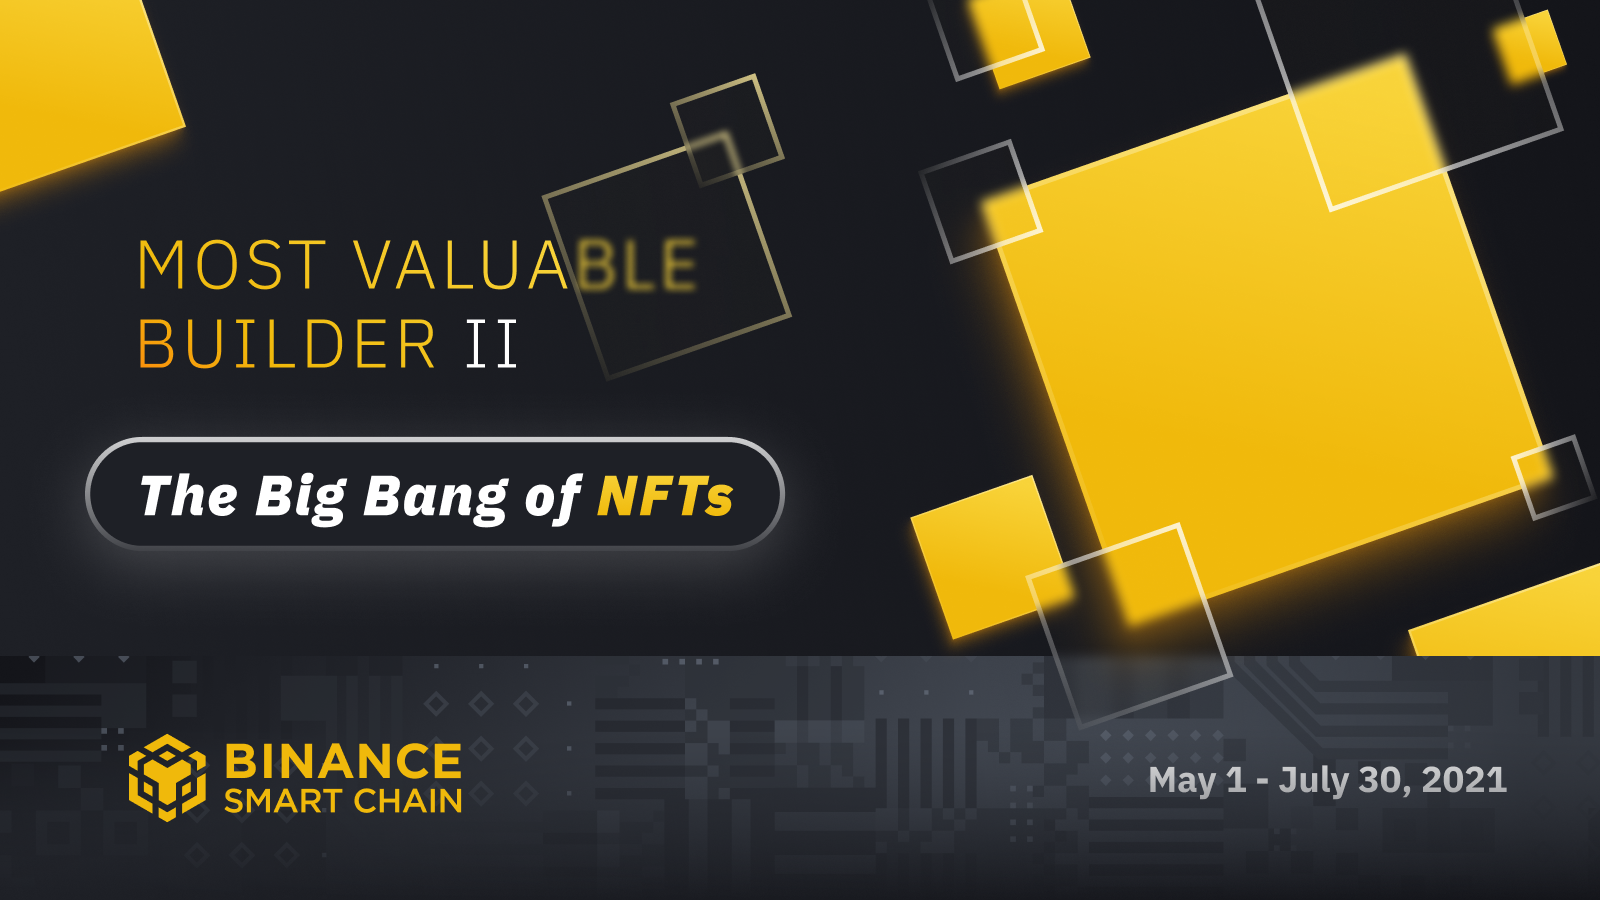 The Most Valuable Builder (MVB) II: The Big Bang of NFTs